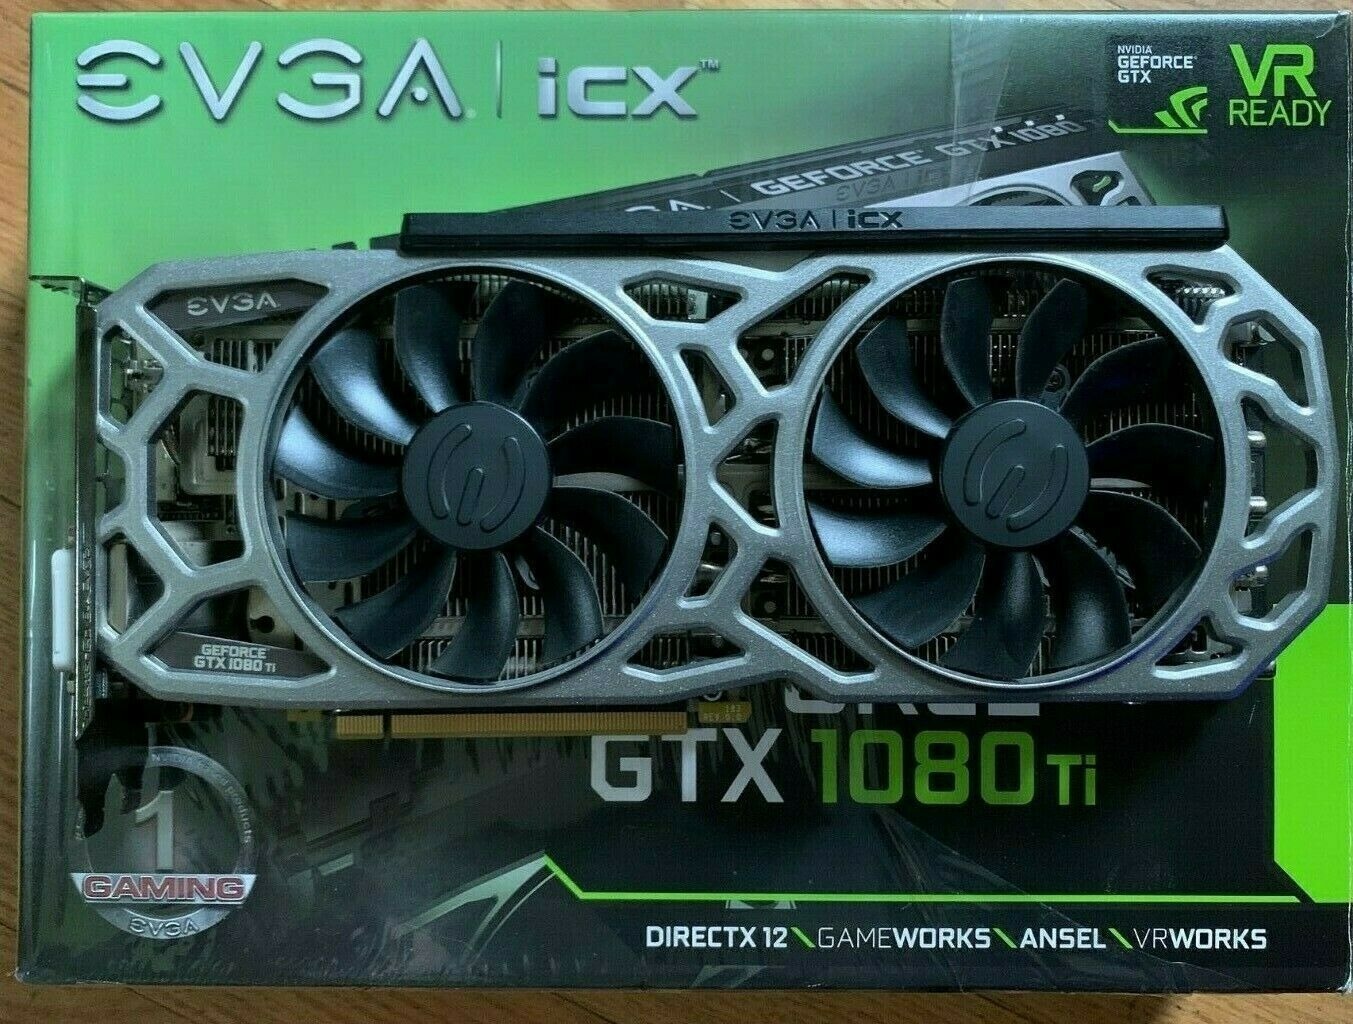 EVGA NVIDIA GeForce GTX 1080 Ti SC2 11GB GDDR5X iCX Technology Graphics Card... 2